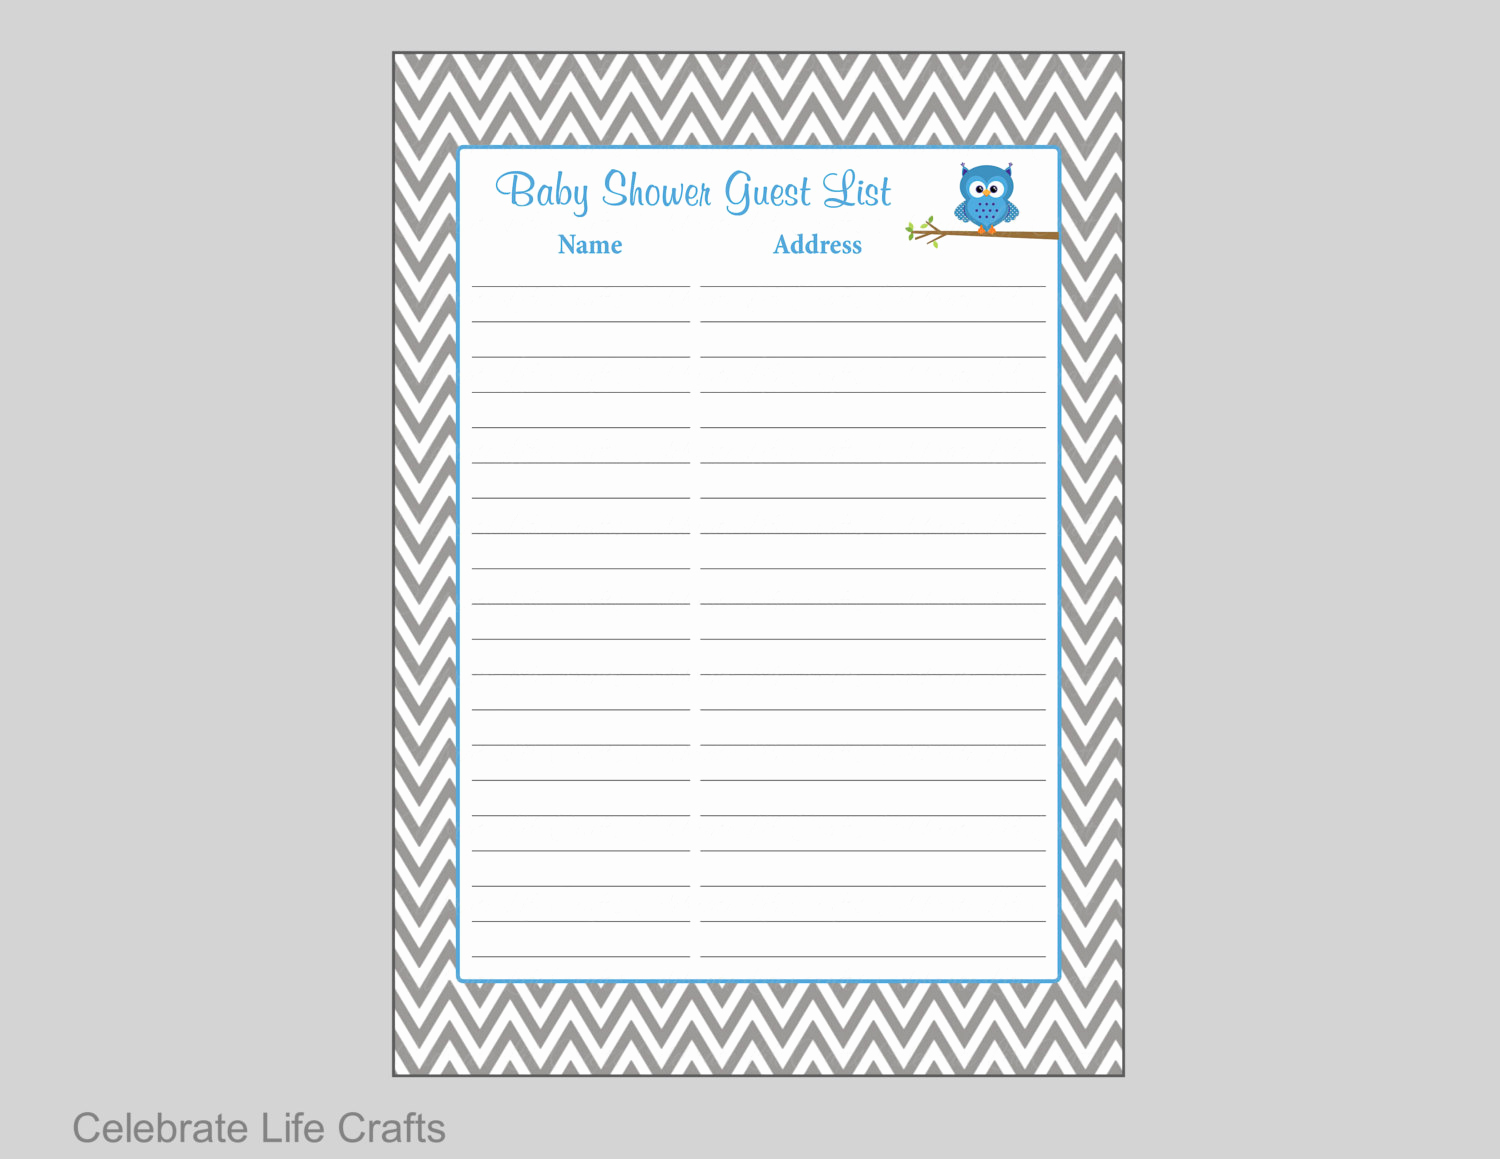 Baby Shower Invitation List Fresh Owl Baby Shower Guest List Printable Baby Shower Sign In